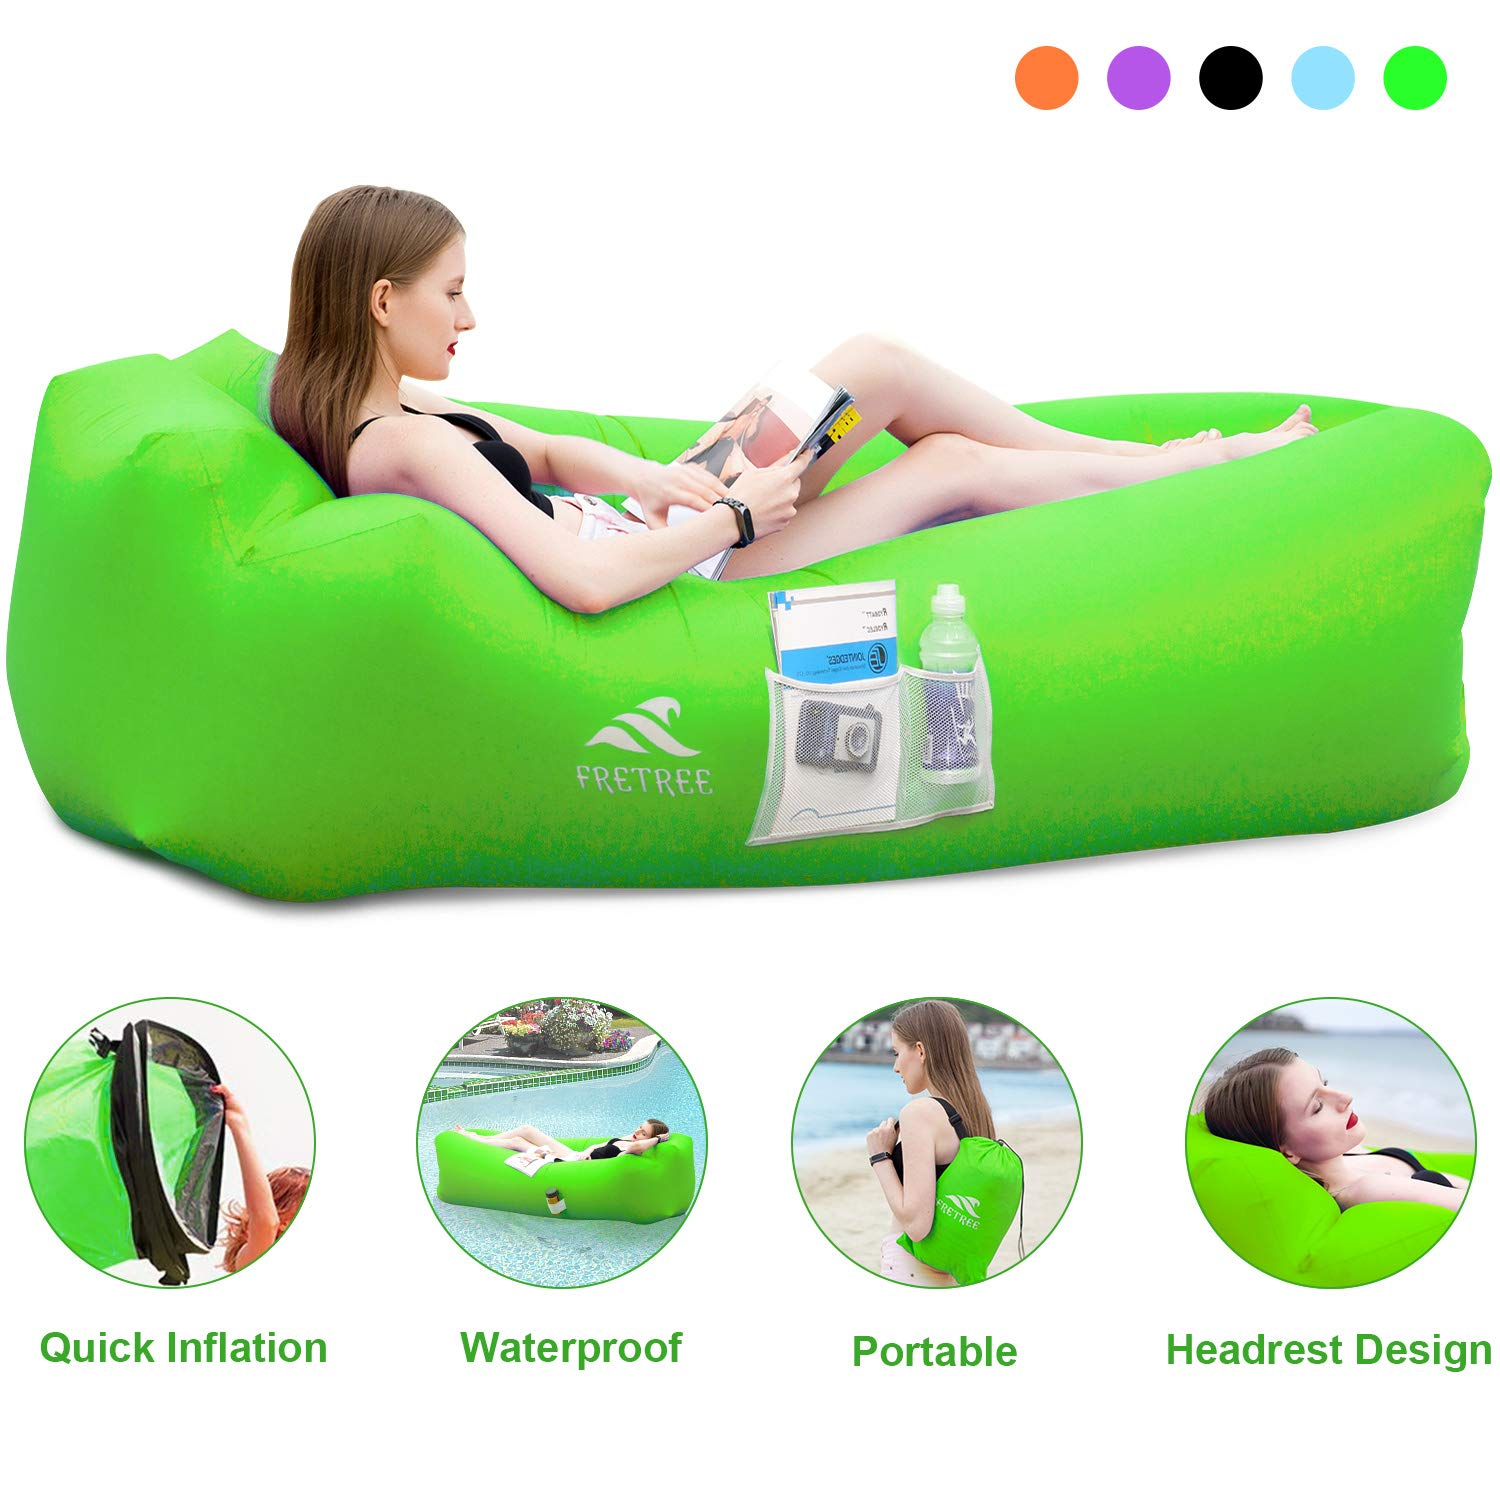 Magnificent Fretree Inflatable Lounger Air Sofa Hammock Portable Anti Air Leaking Waterproof Pouch Couch And Beach Chair Camping Accessories For Parties Creativecarmelina Interior Chair Design Creativecarmelinacom